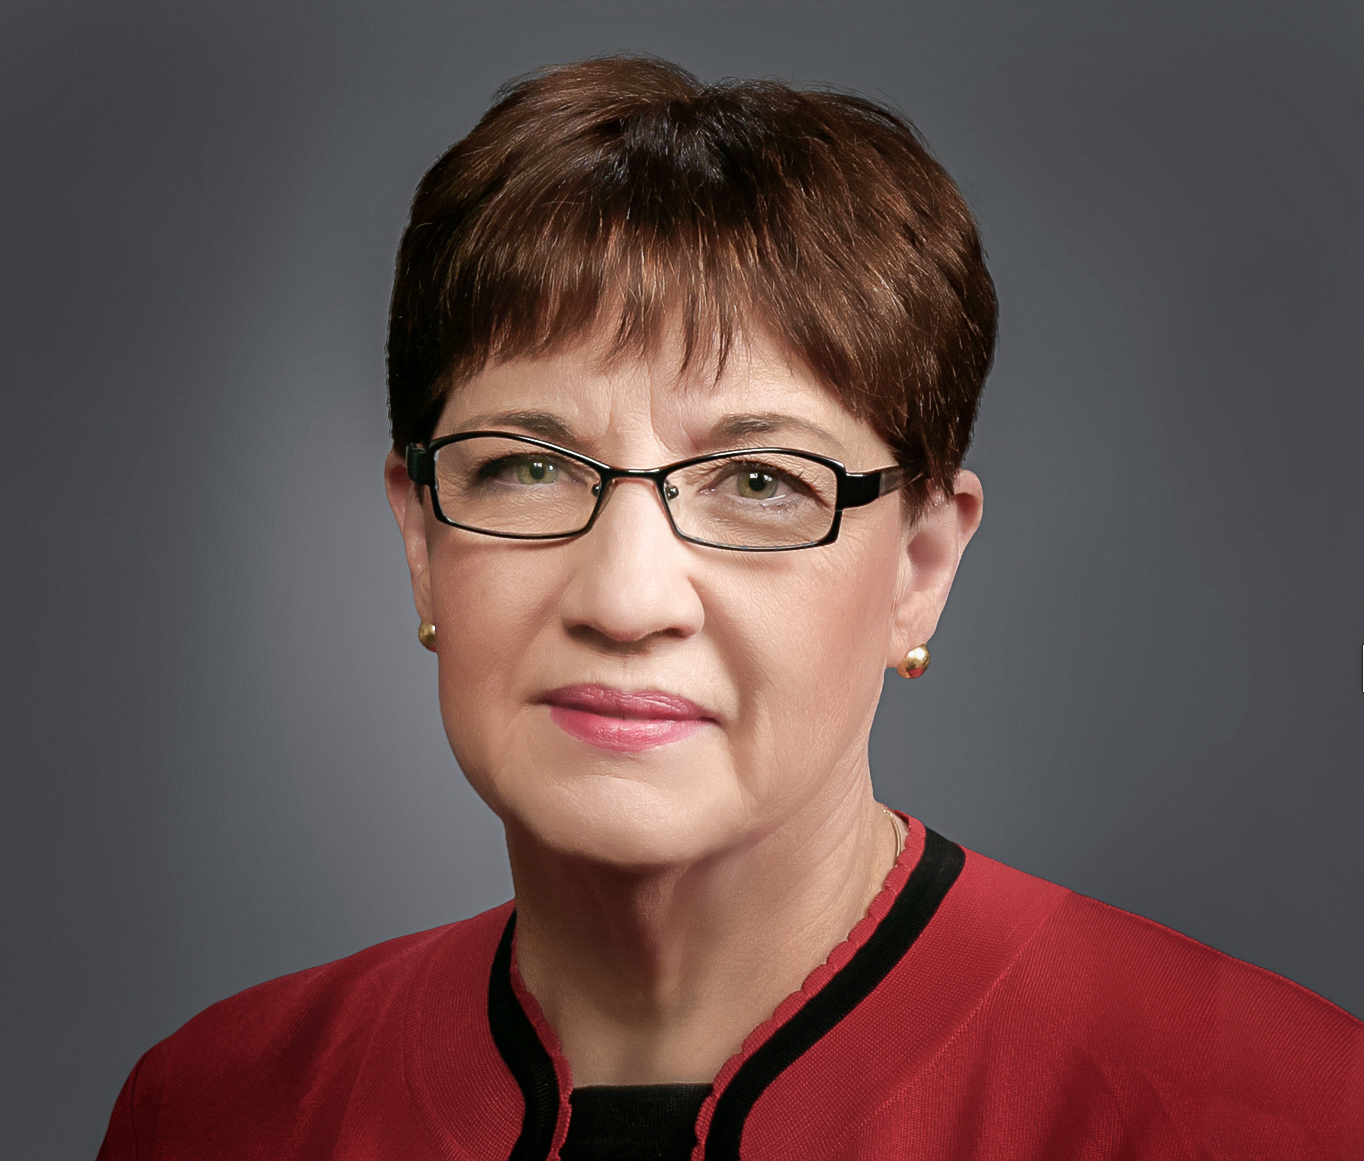 Headshot of Patricia W. Christensen Attorney at Parr Brown Gee and Loveless